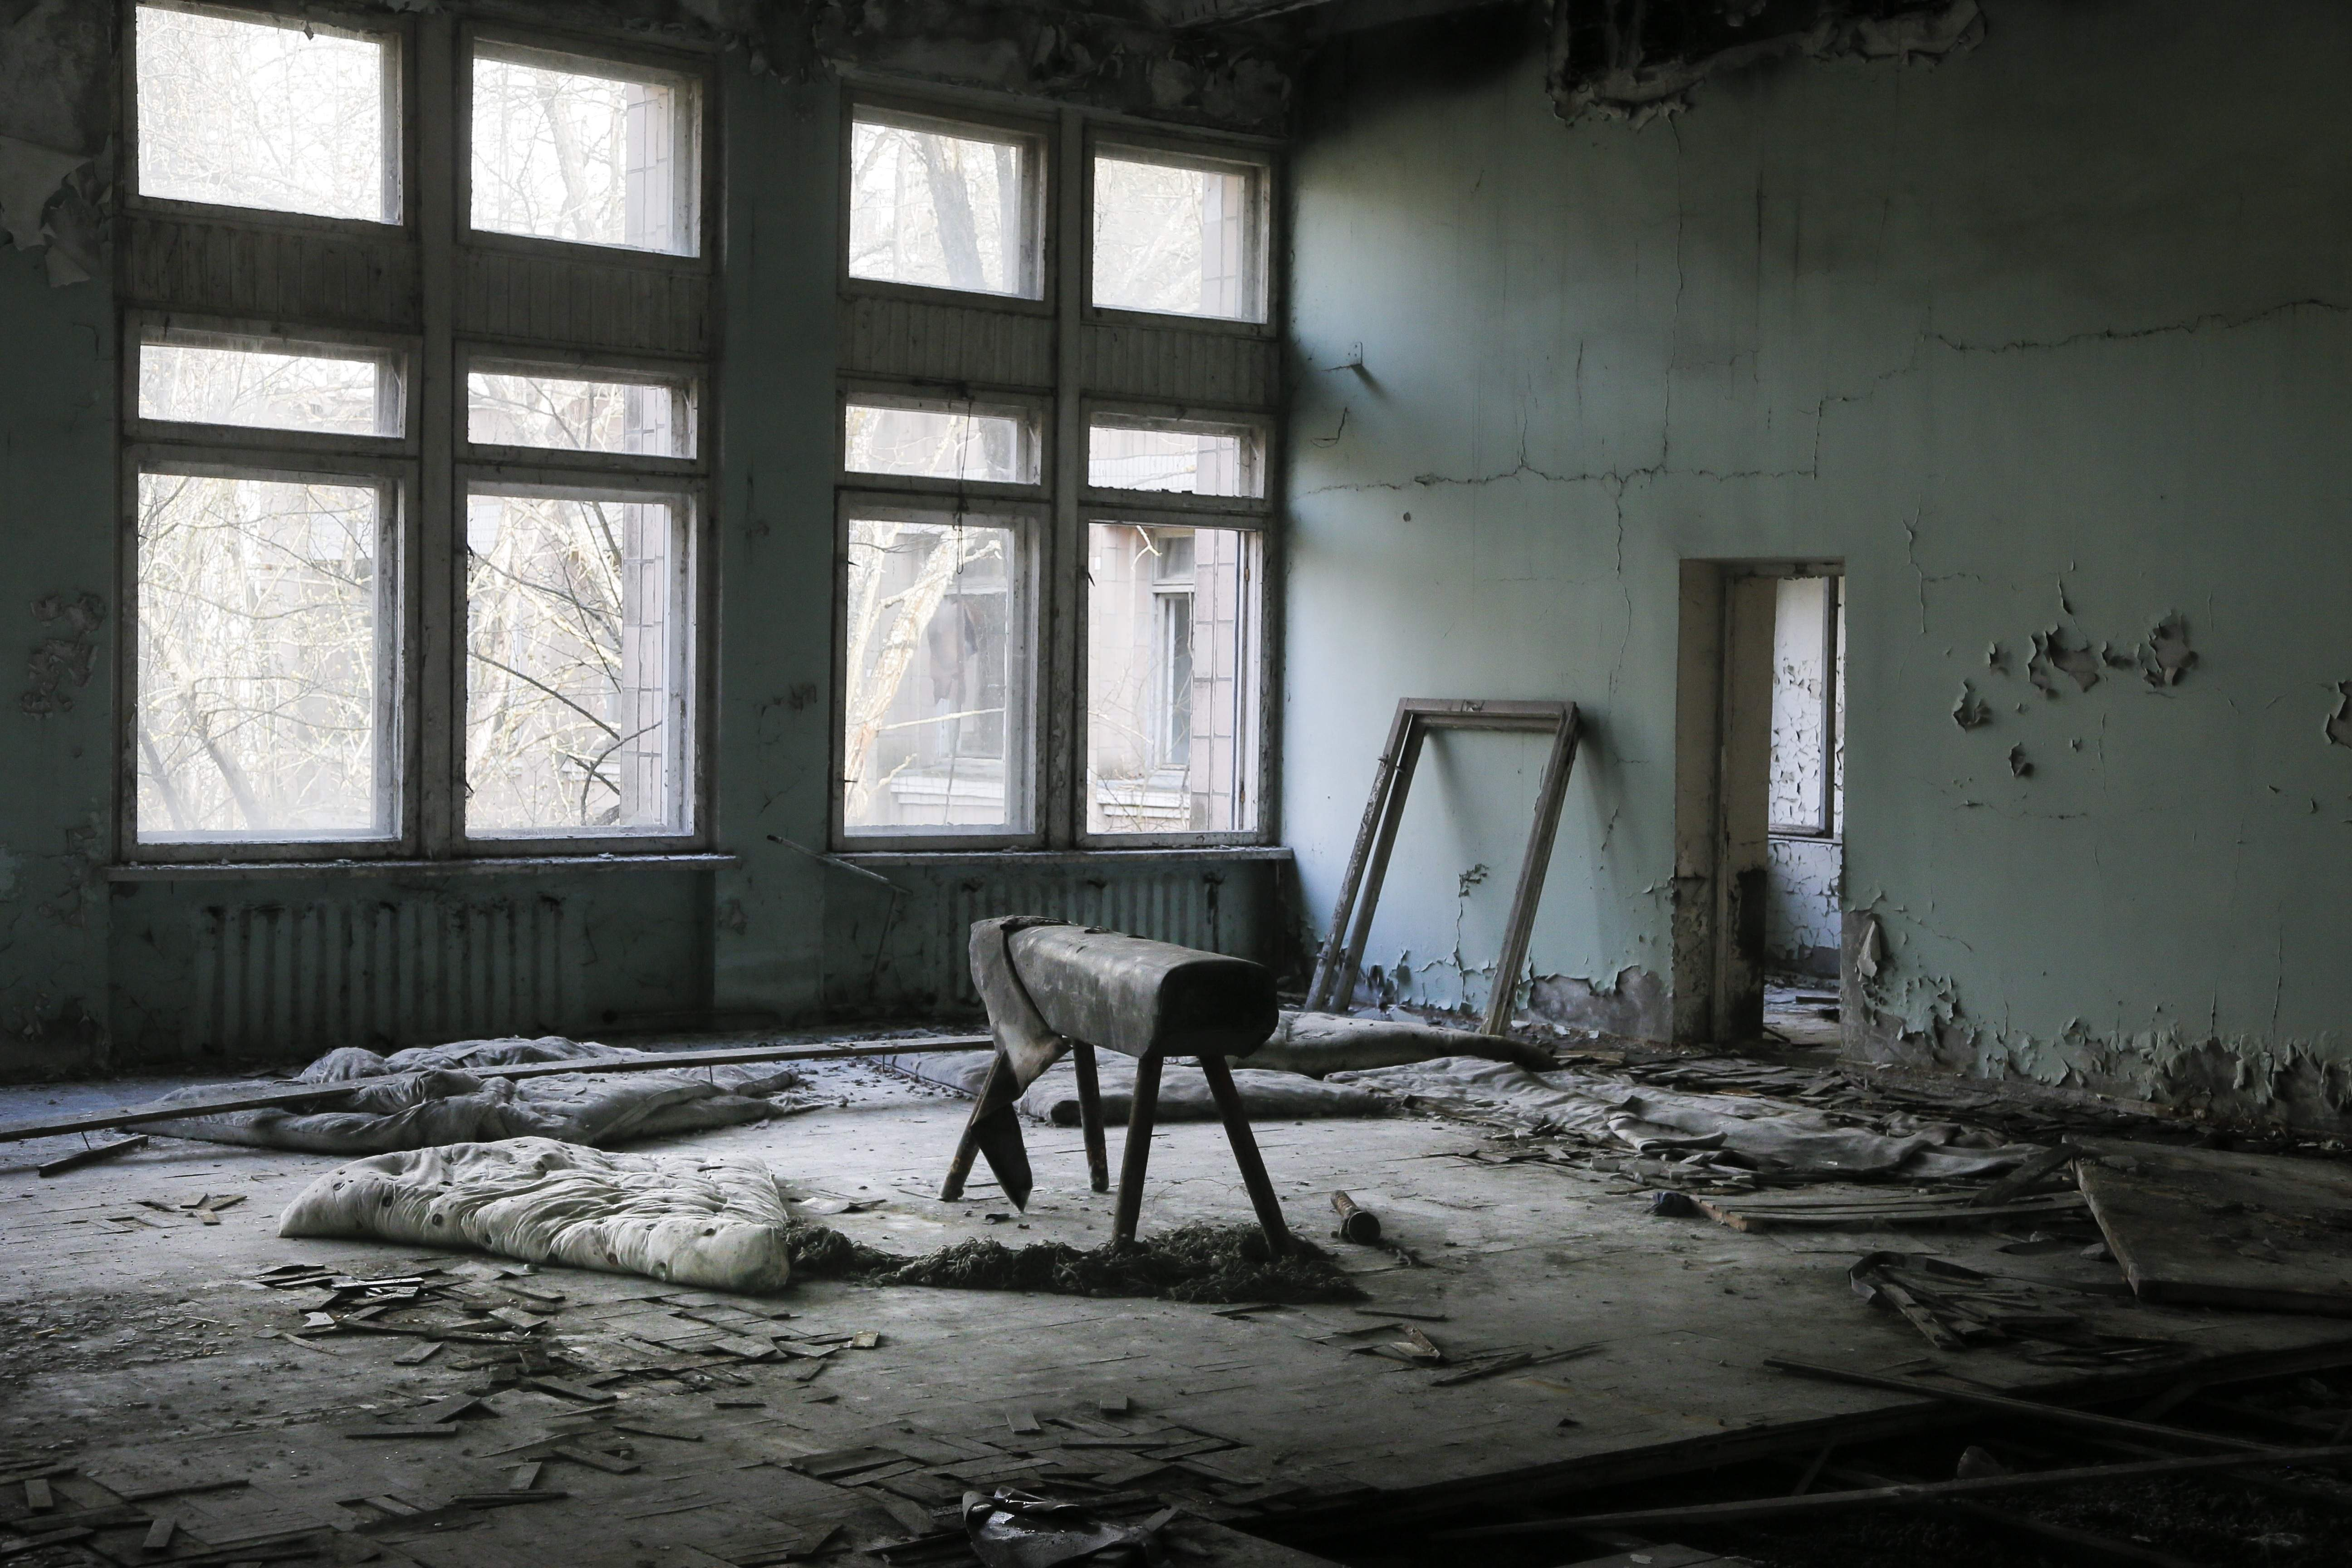 This photo taken Wednesday, April 5, 2017, shows a gymnasium in a school in the deserted town of Pripyat, some 3 kilometers (1.86 miles) from the Chernobyl nuclear power plant Ukraine. Once home to some 50,000 people whose lives were connected to the Chernobyl nuclear power plant, Pripyat was hastily evacuated one day after a reactor at the plant 3 kilometers (2 miles away) exploded on April 26, 1986. The explosion and the subsequent fire spewed a radioactive plume over much of northern Europe. THE ASSOCIATED PRESS